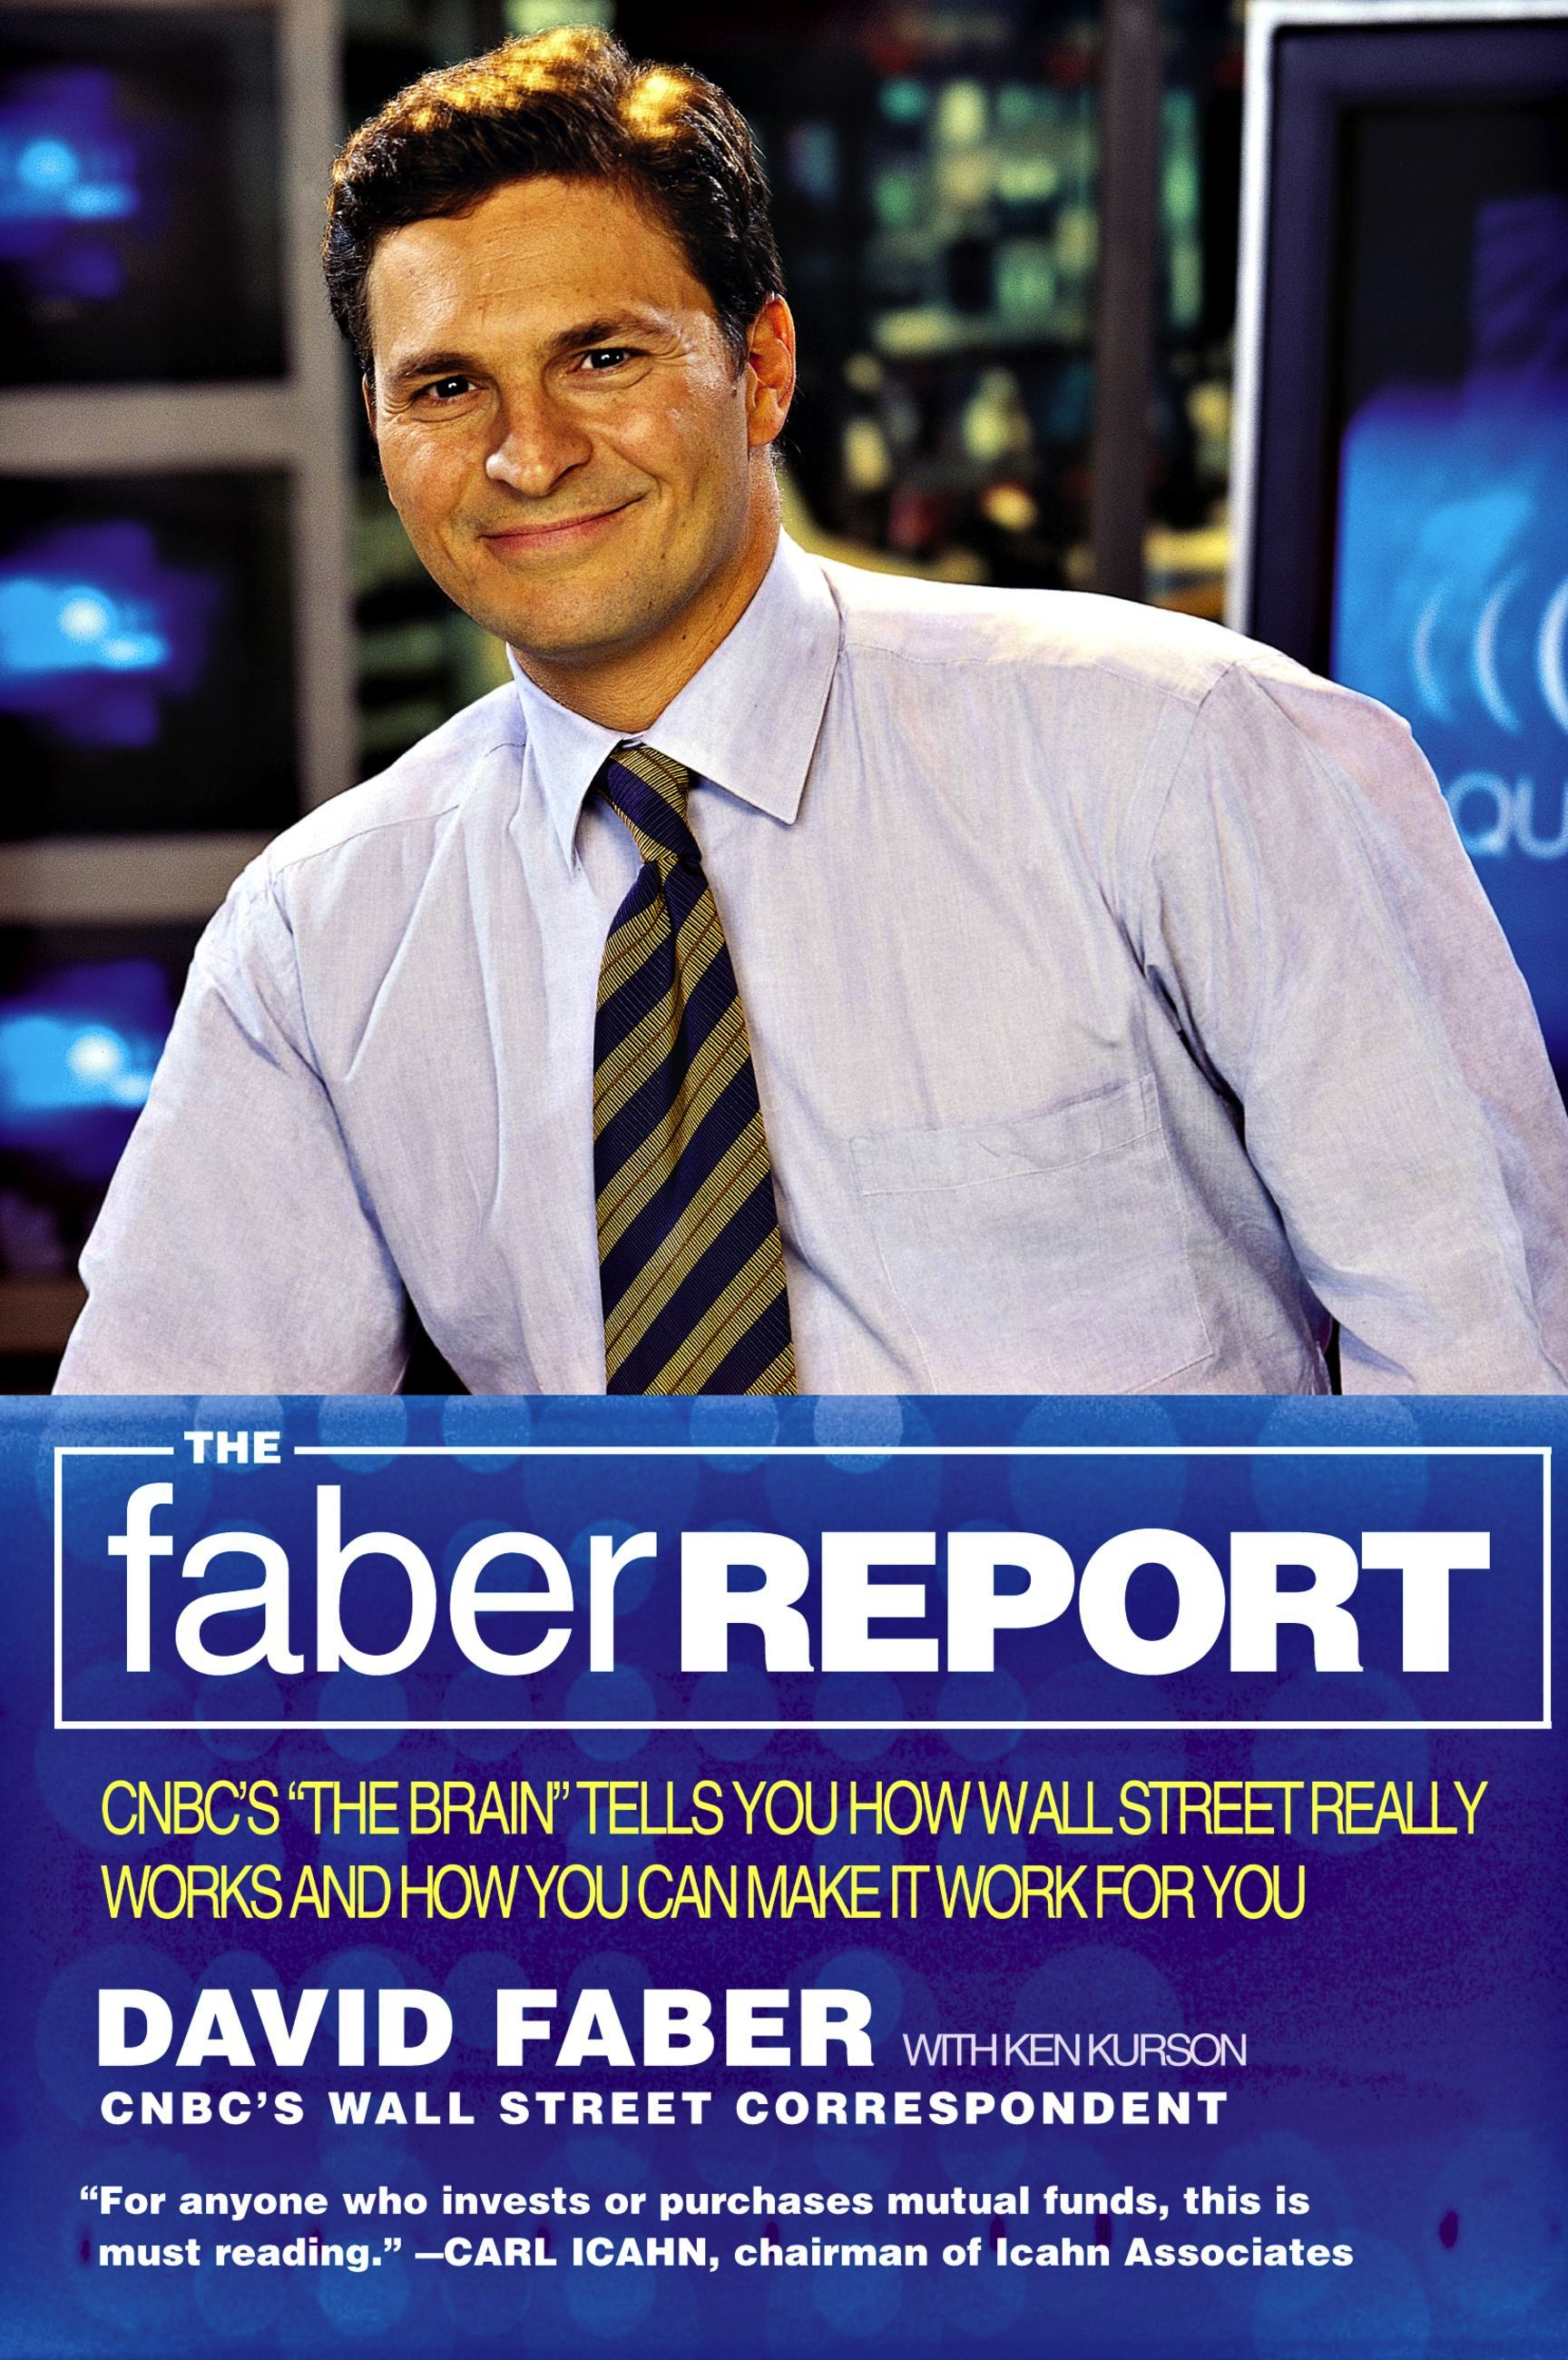 Faber Report, The